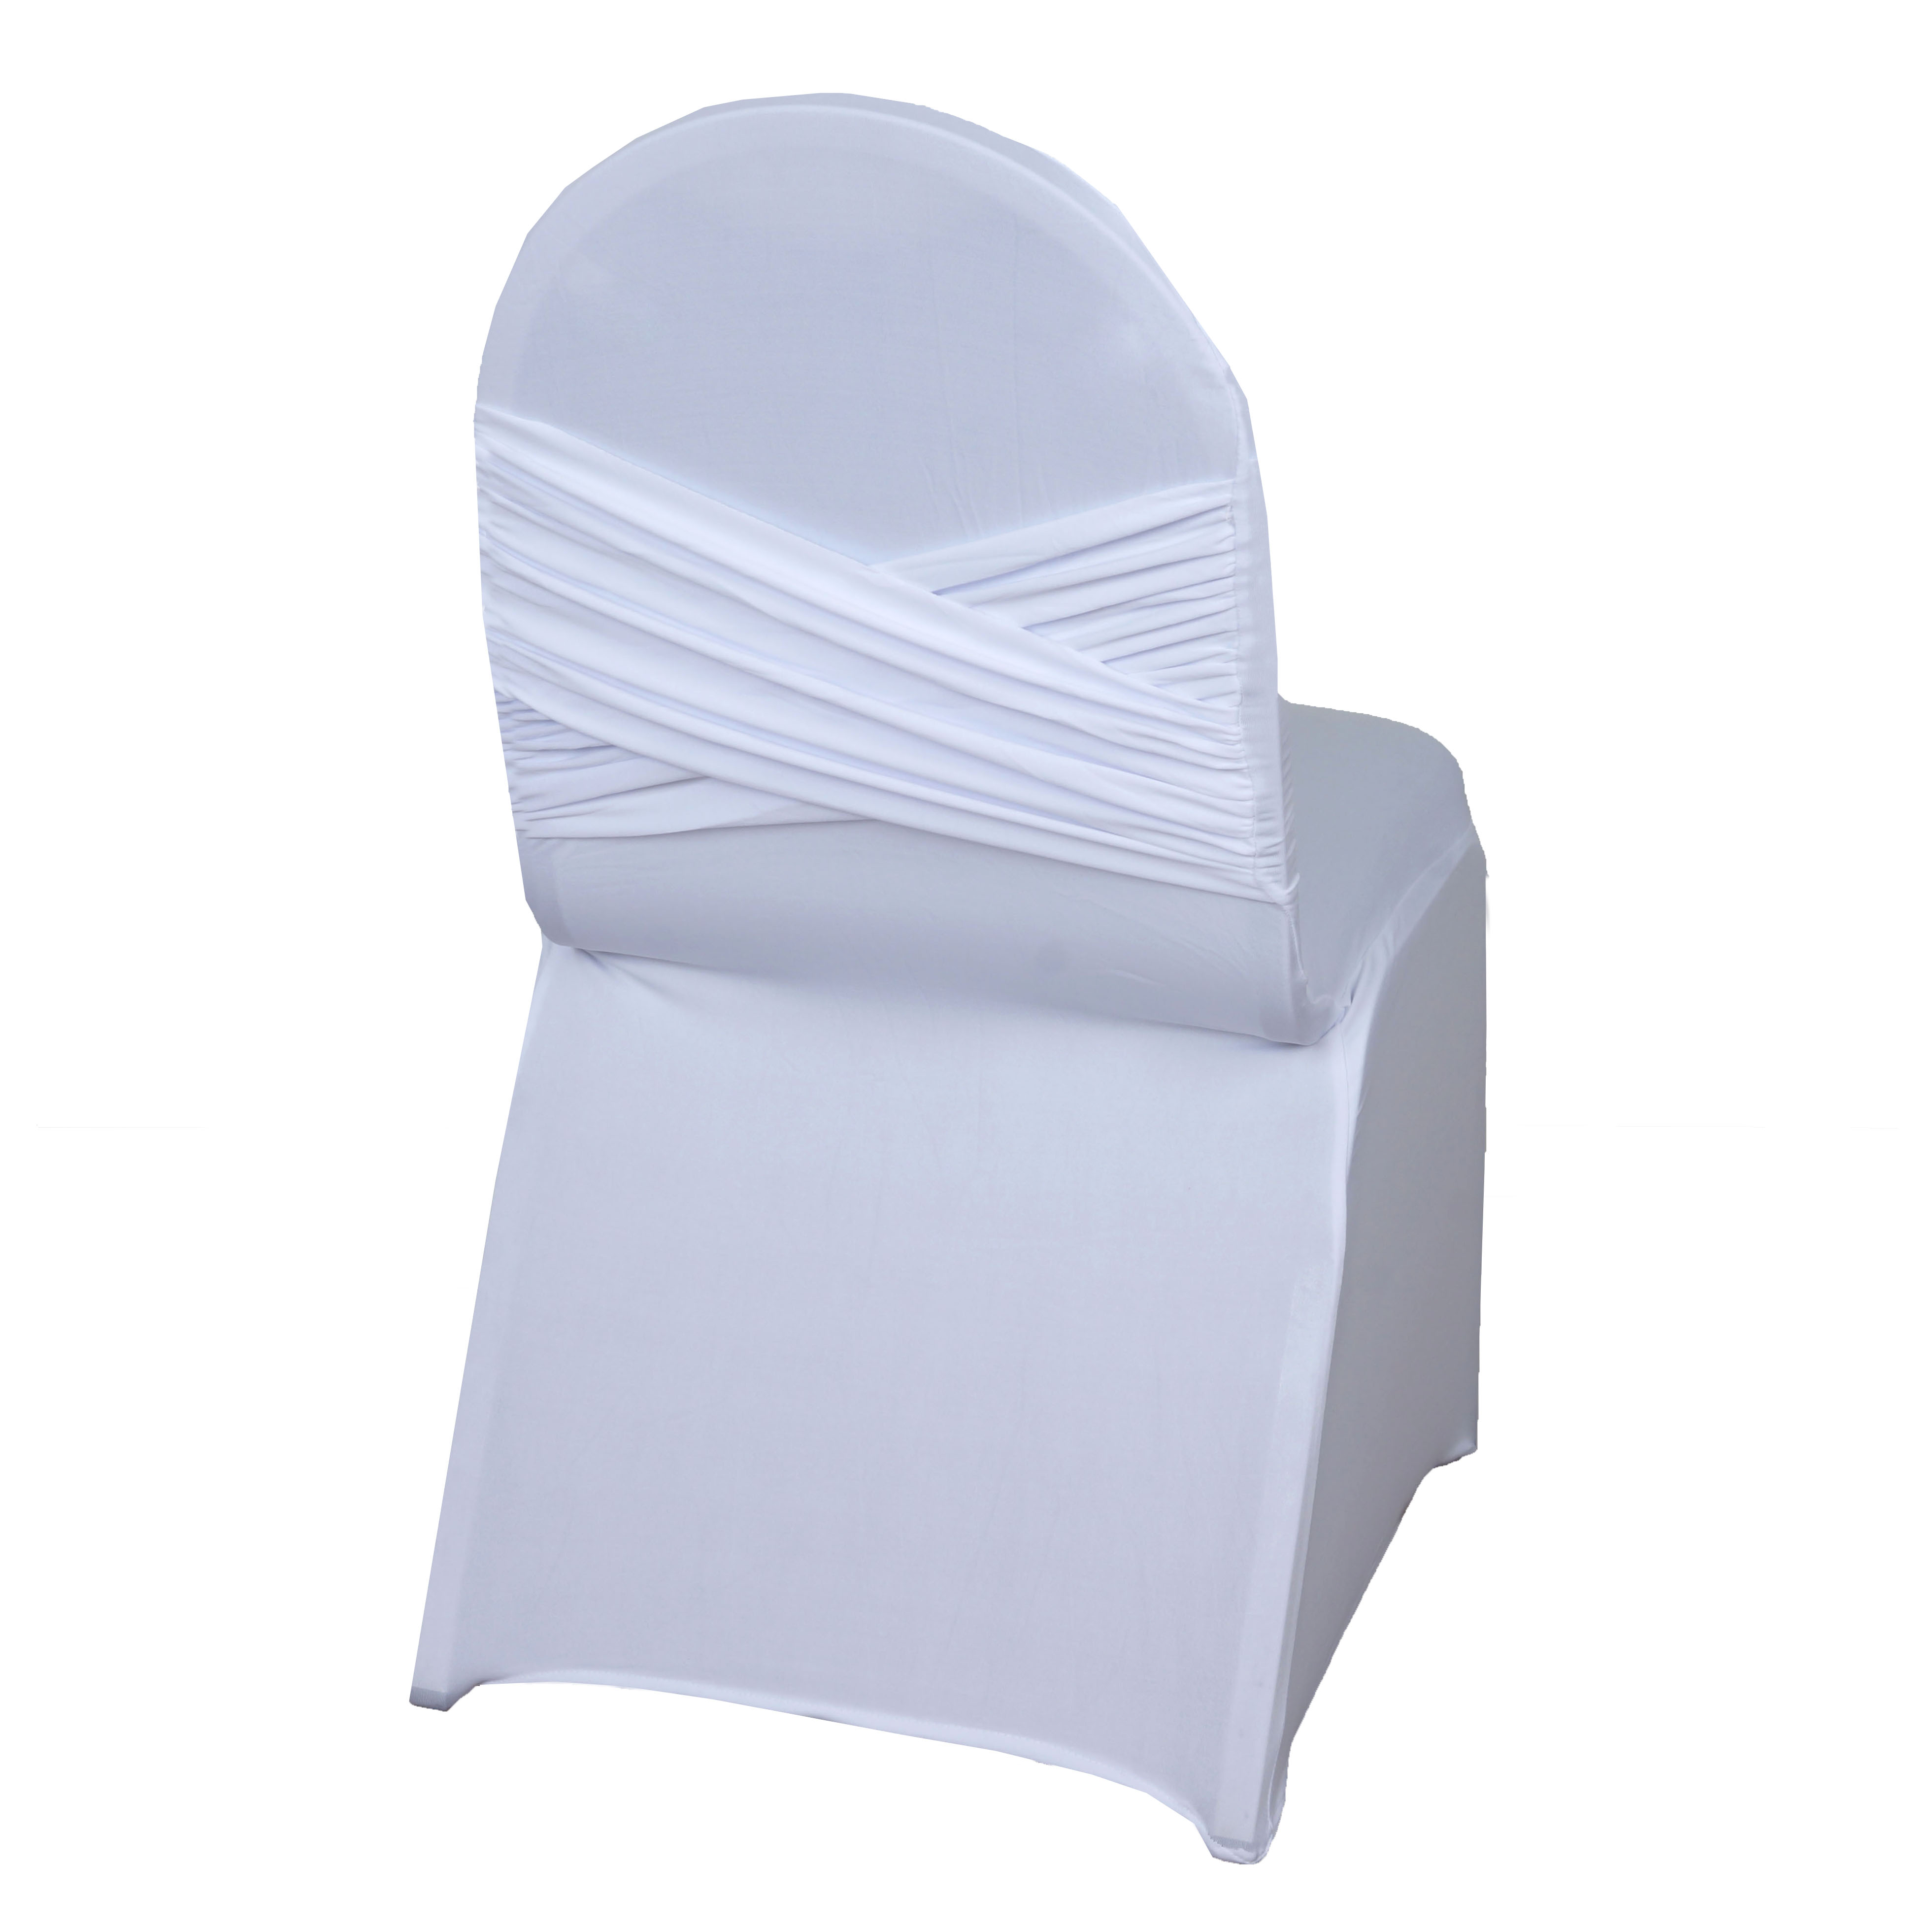 100 Pcs Madrid Banquet Chair Covers With Crisscross Design